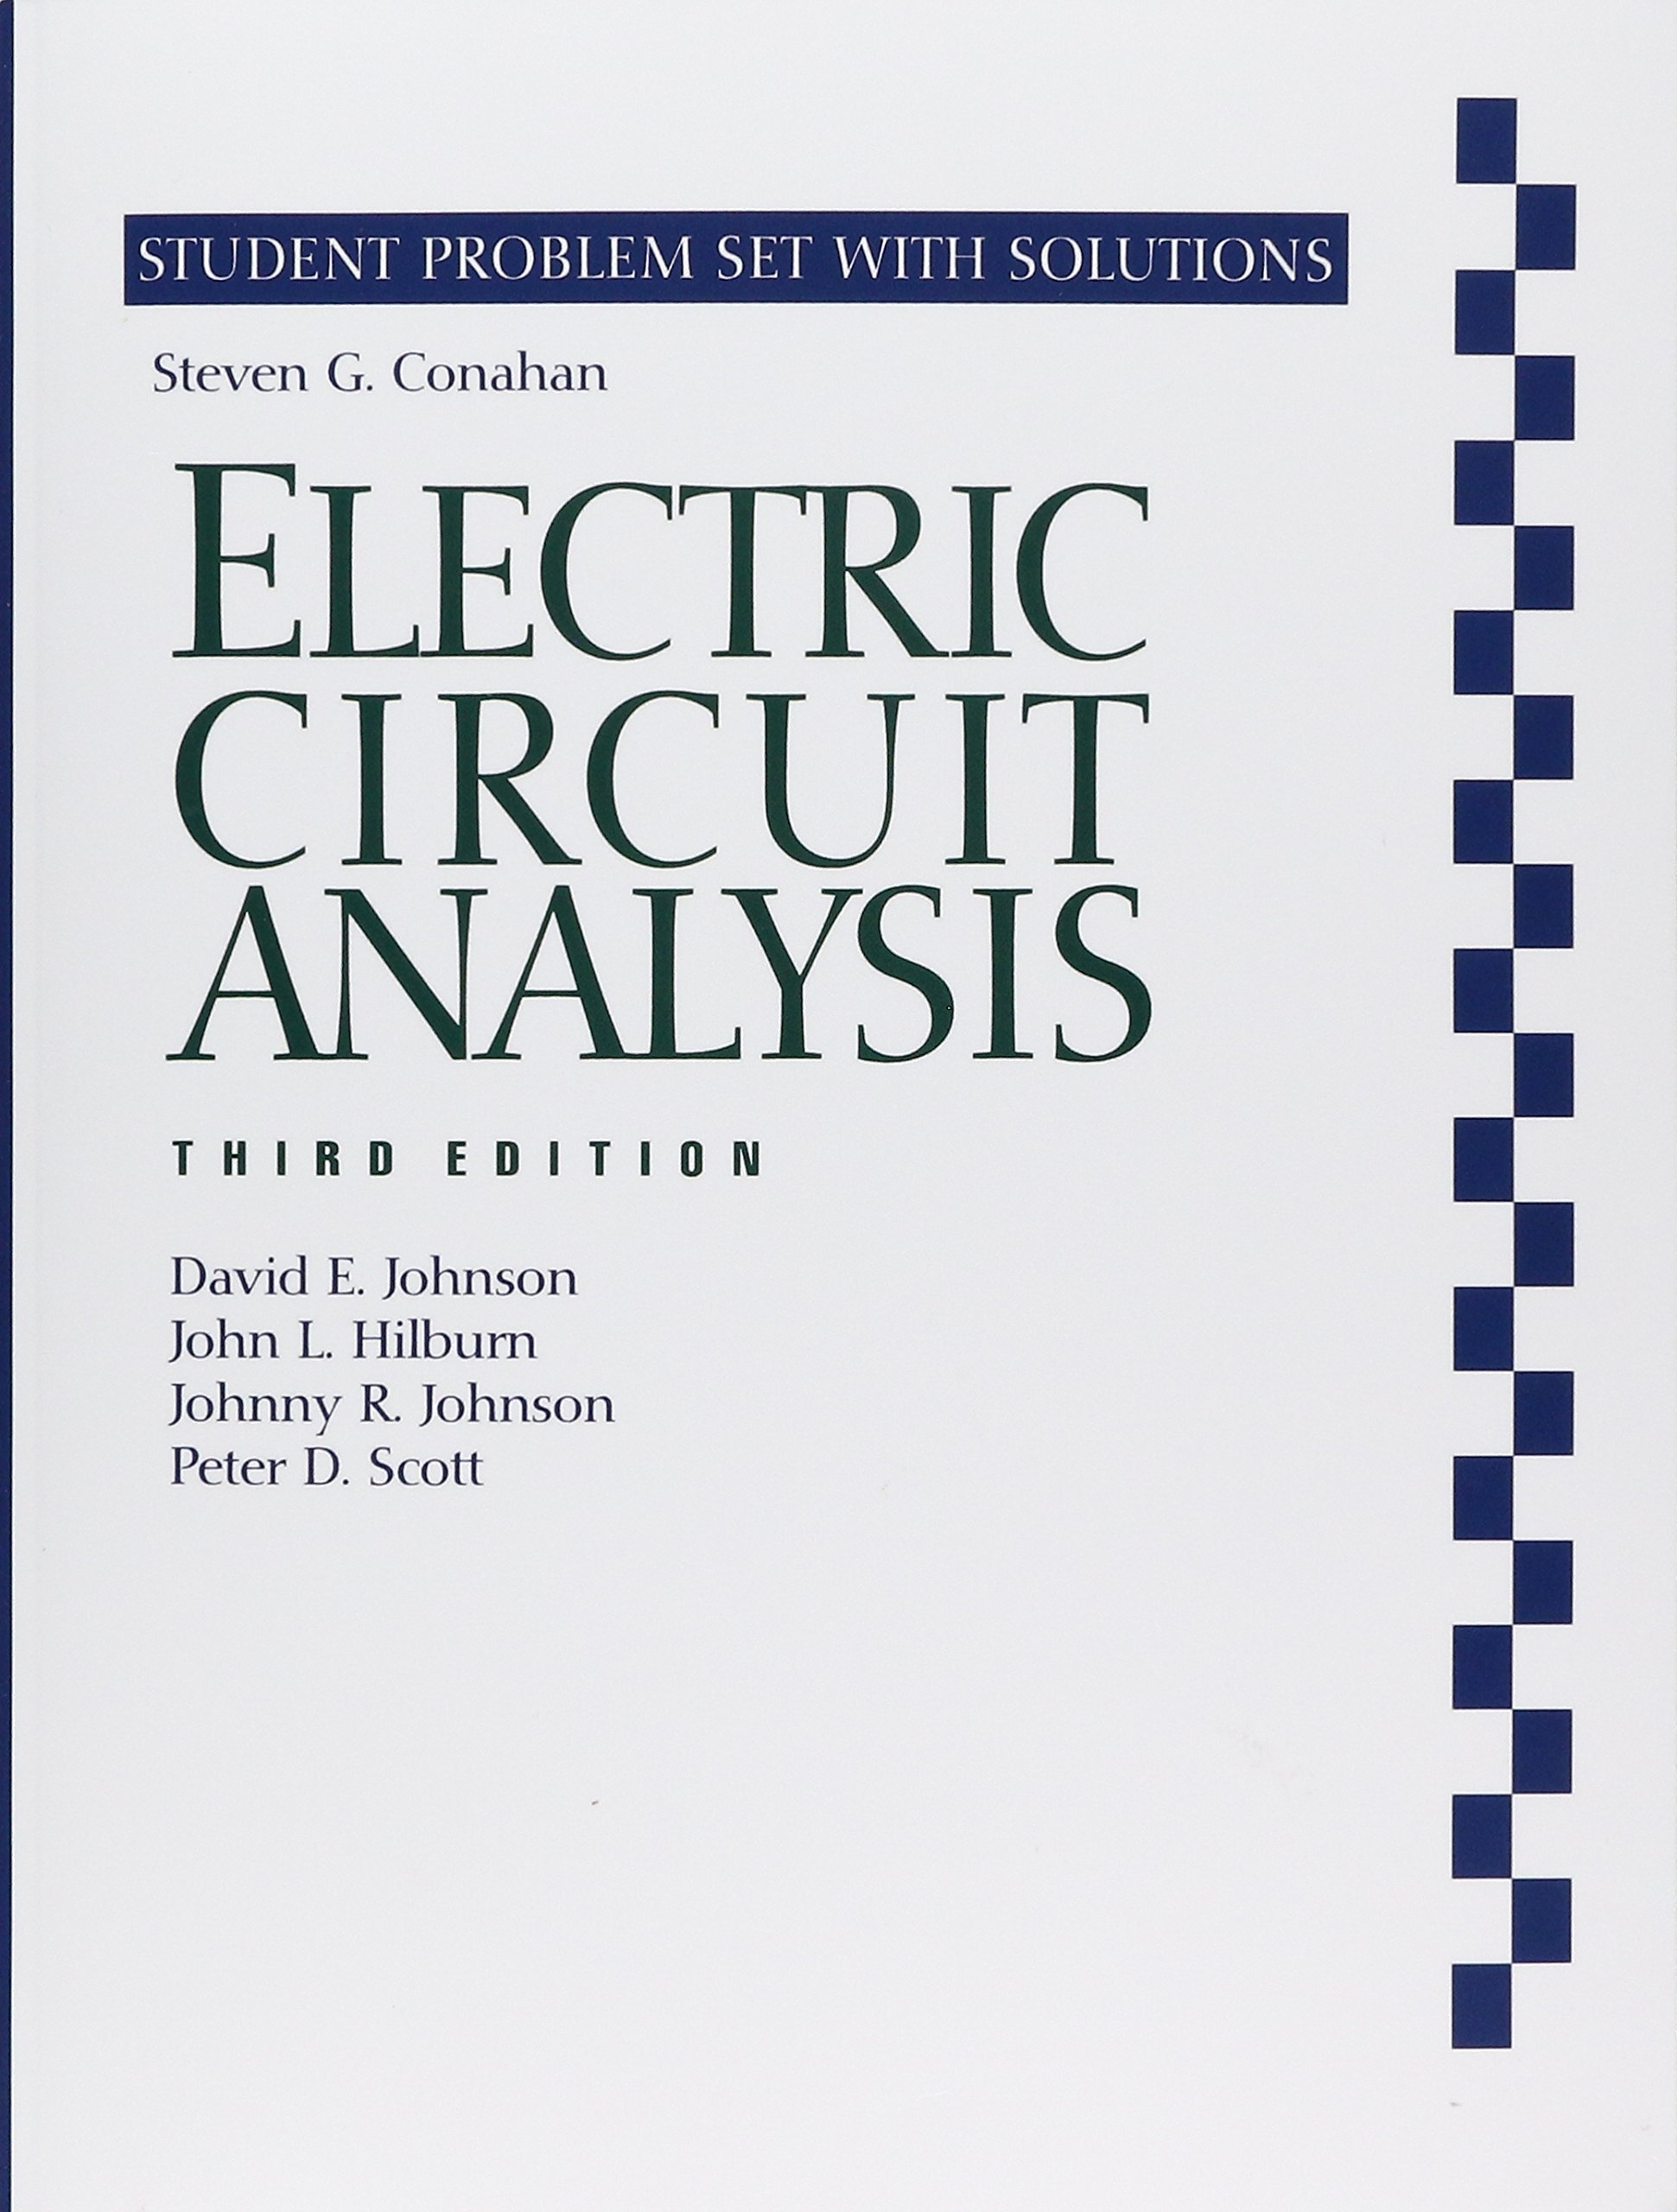 electric circuit analysis 3e student problem set and solutions rh amazon ca